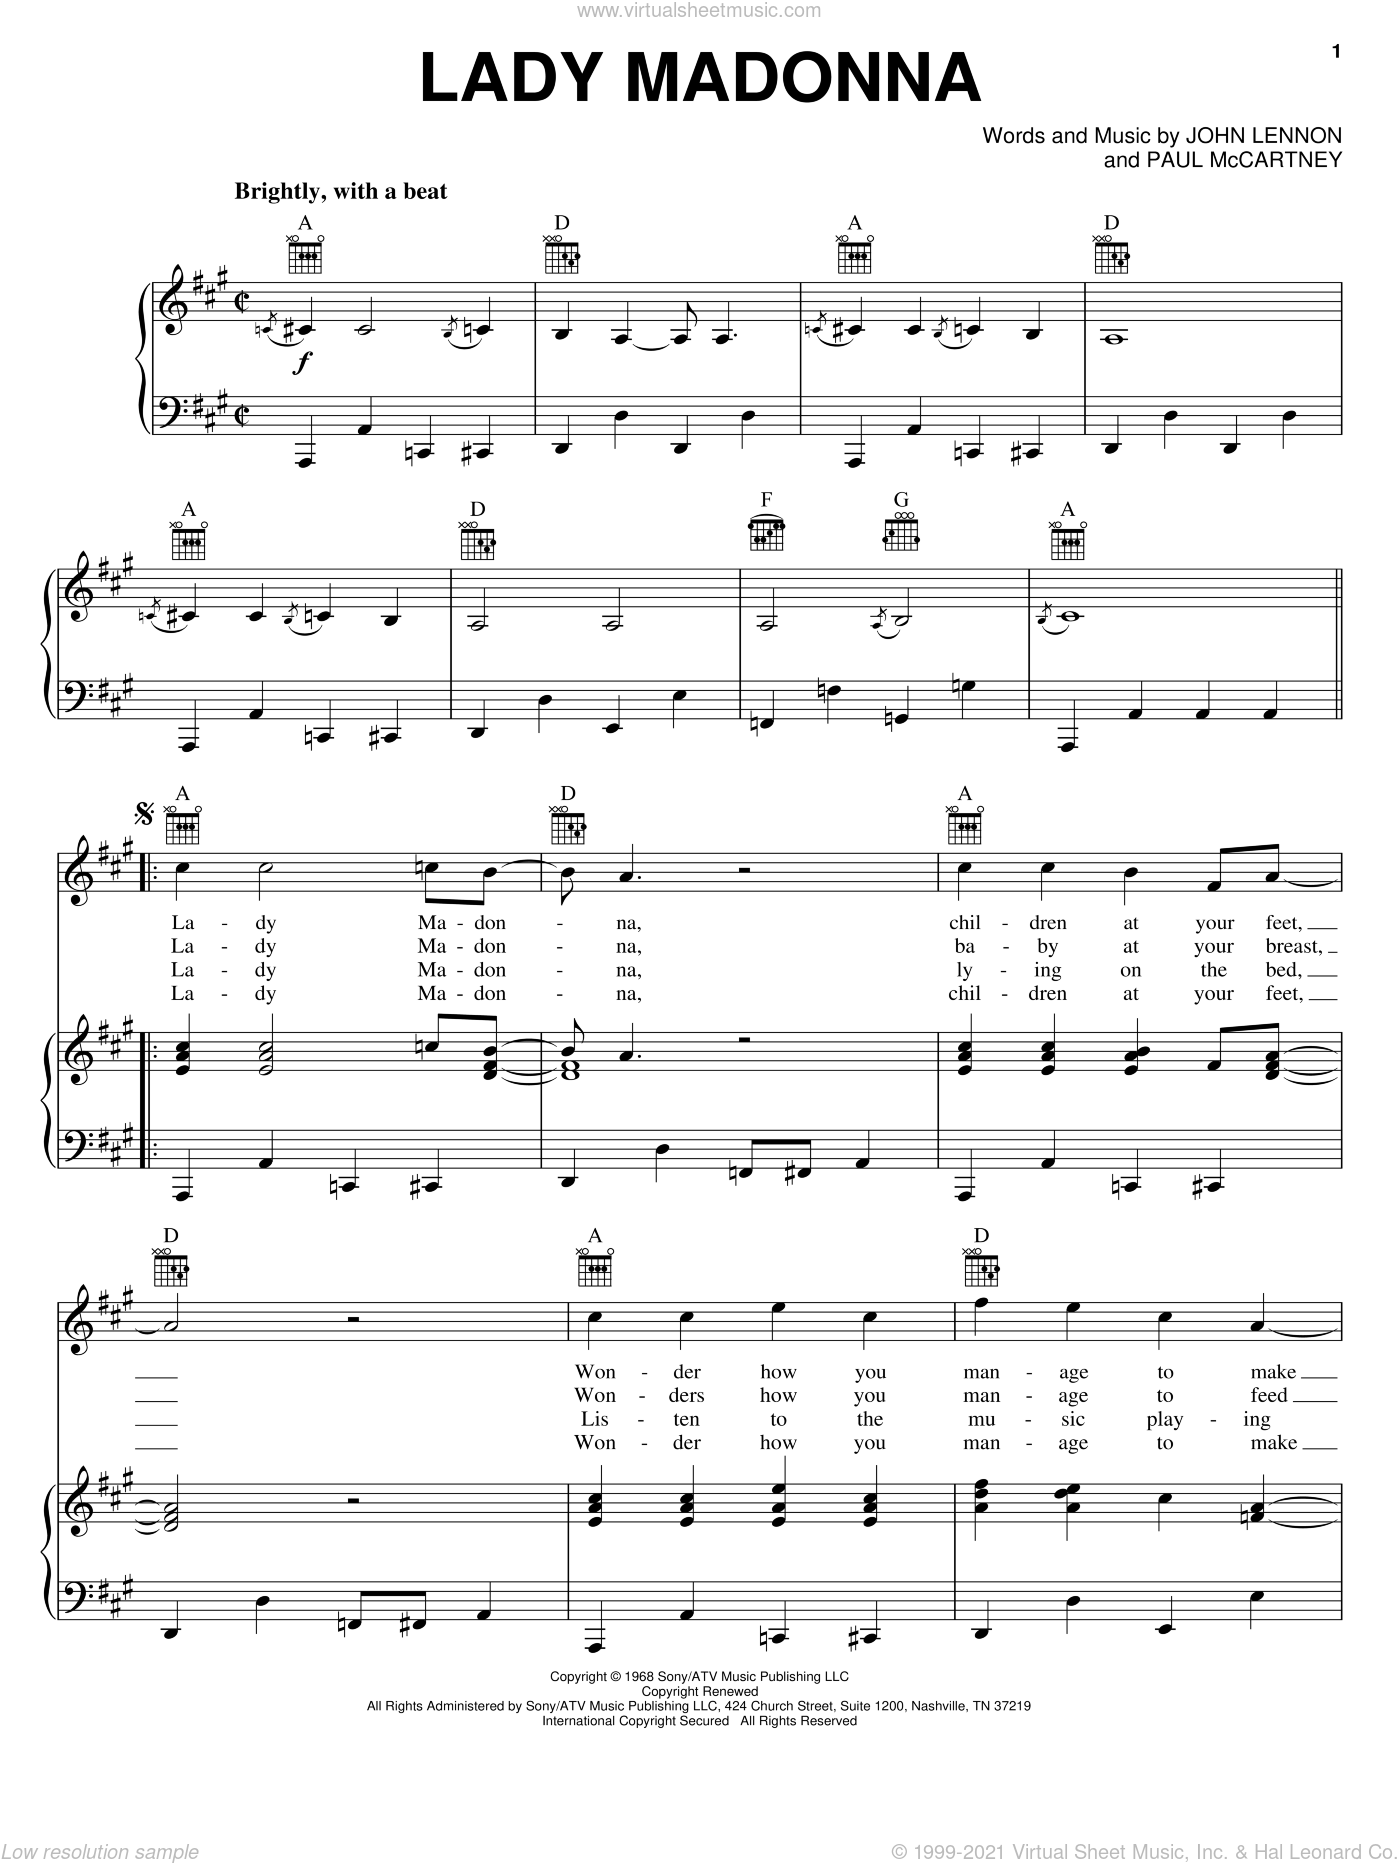 Lady Madonna sheet music for voice, piano or guitar by The Beatles, John Lennon and Paul McCartney, intermediate skill level